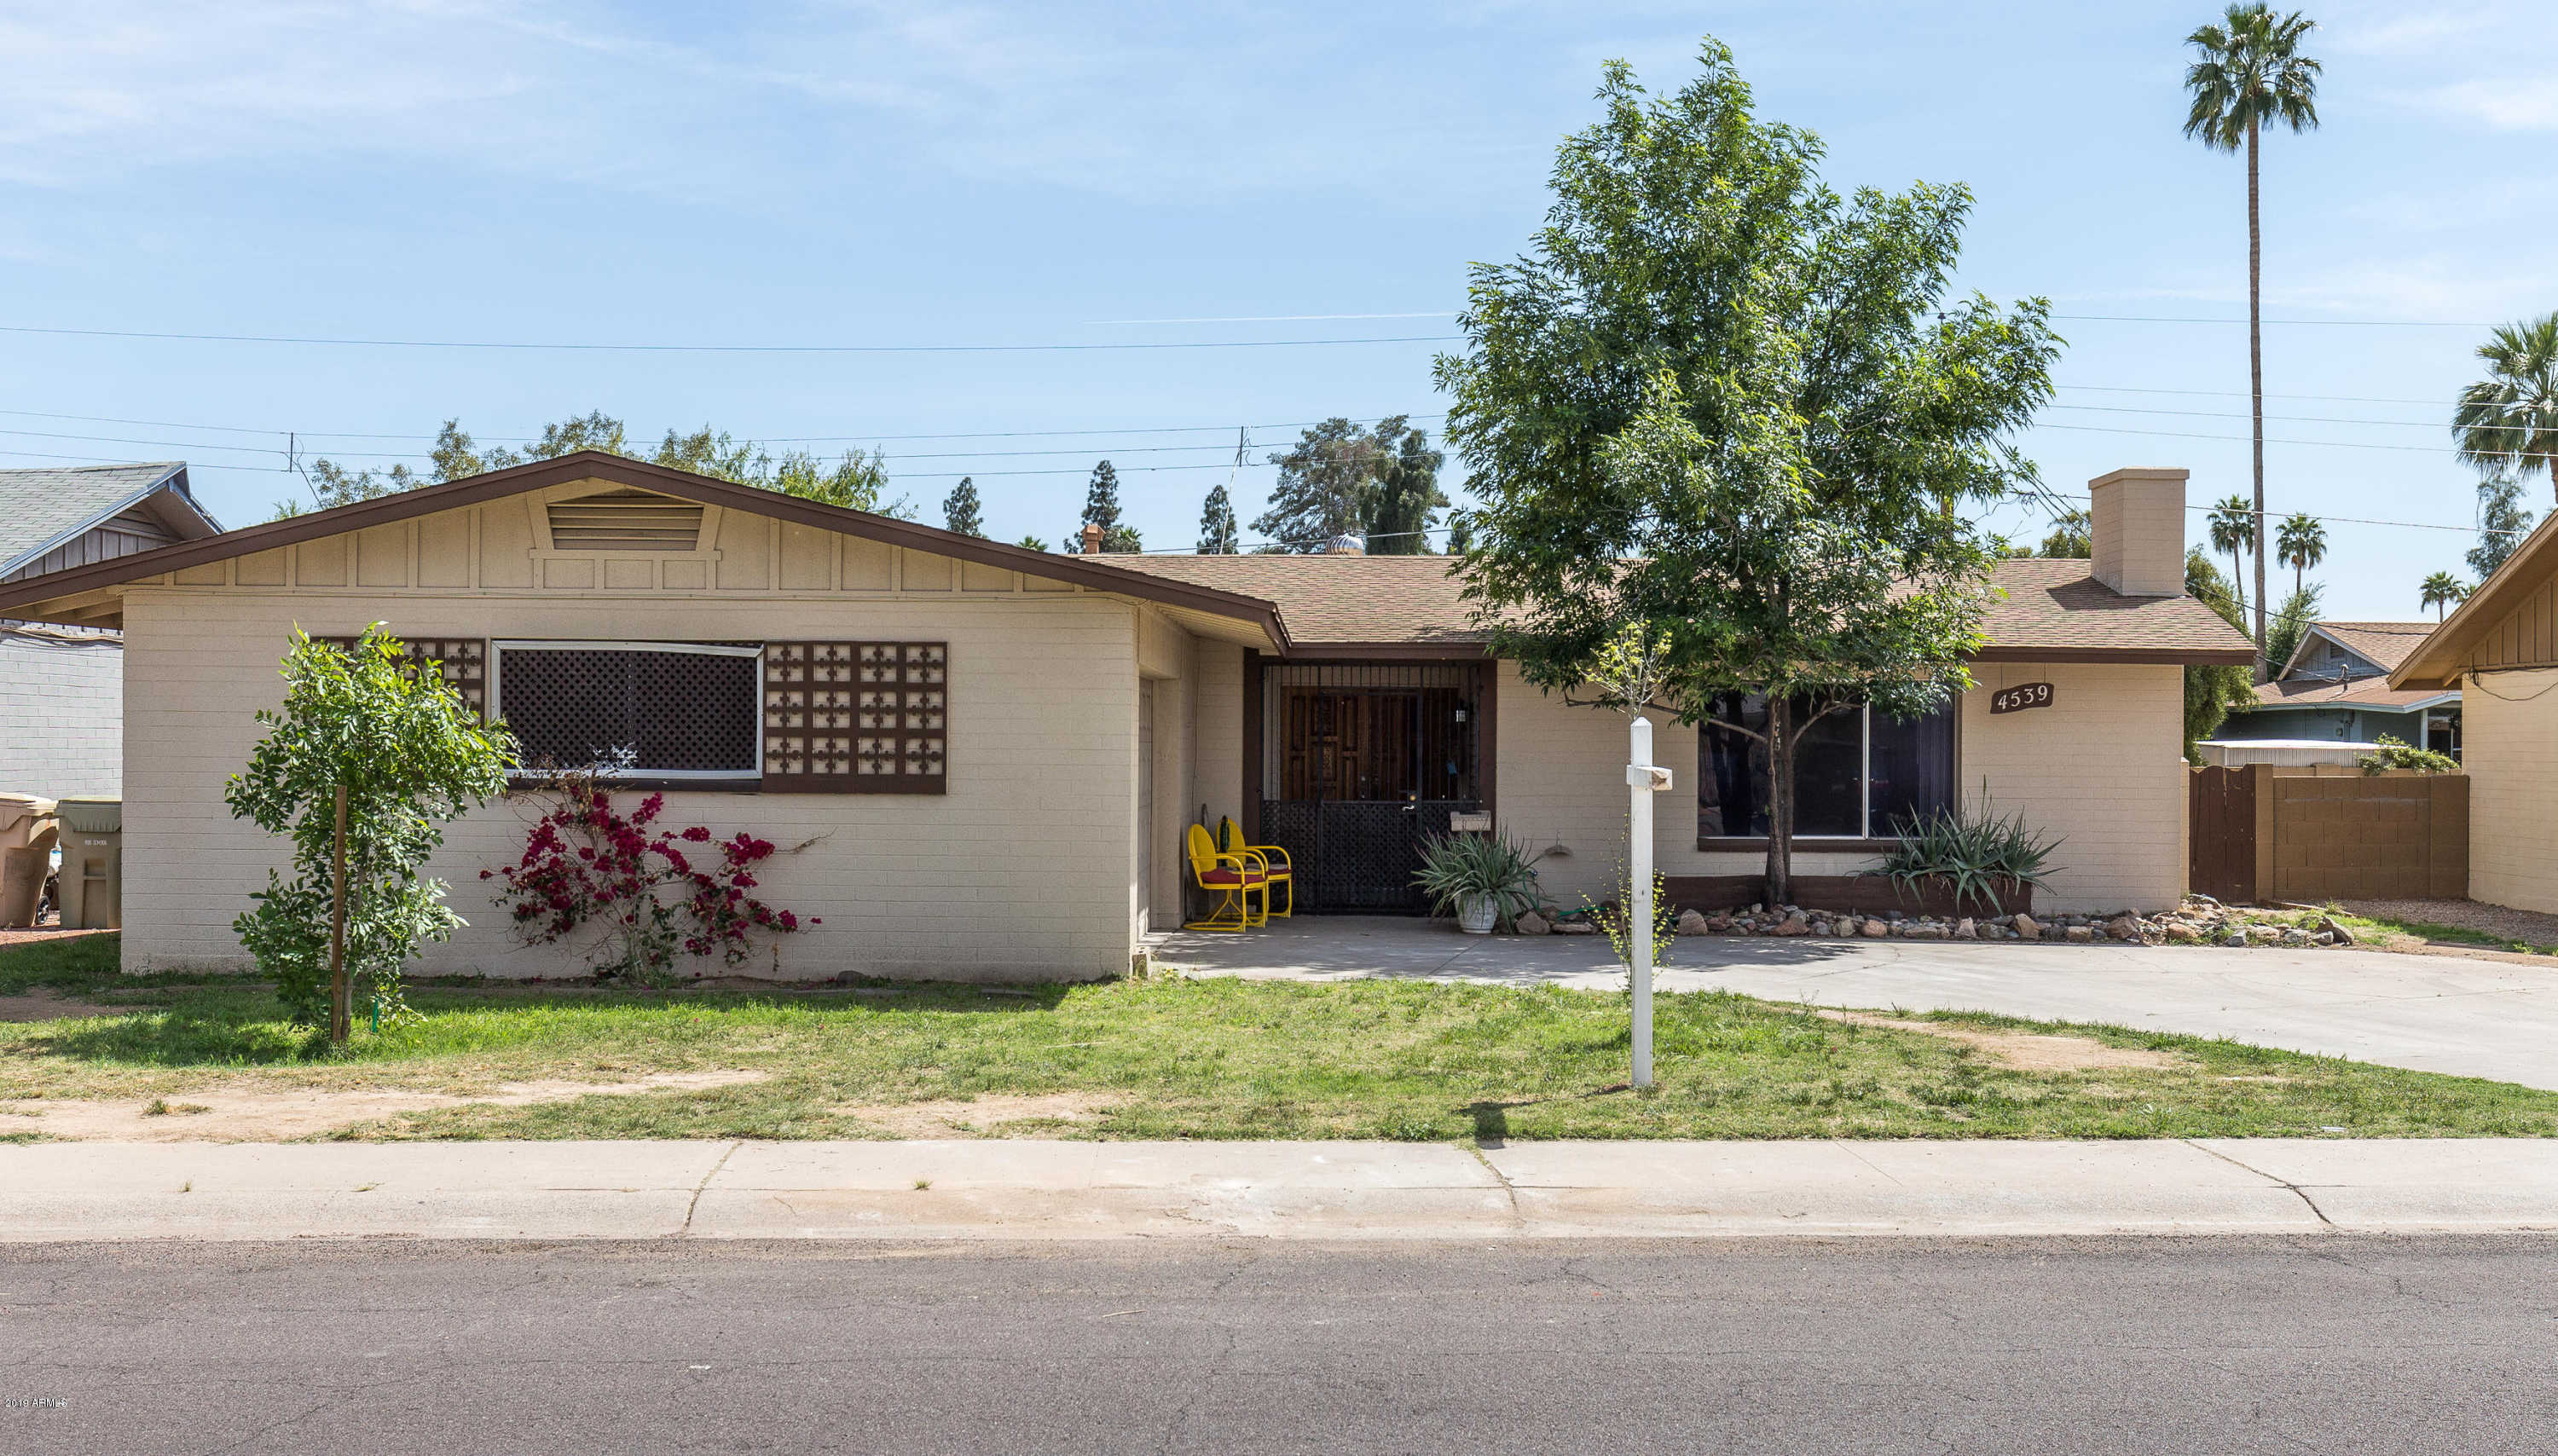 $219,900 - 3Br/2Ba - Home for Sale in West Plaza Estates, Glendale